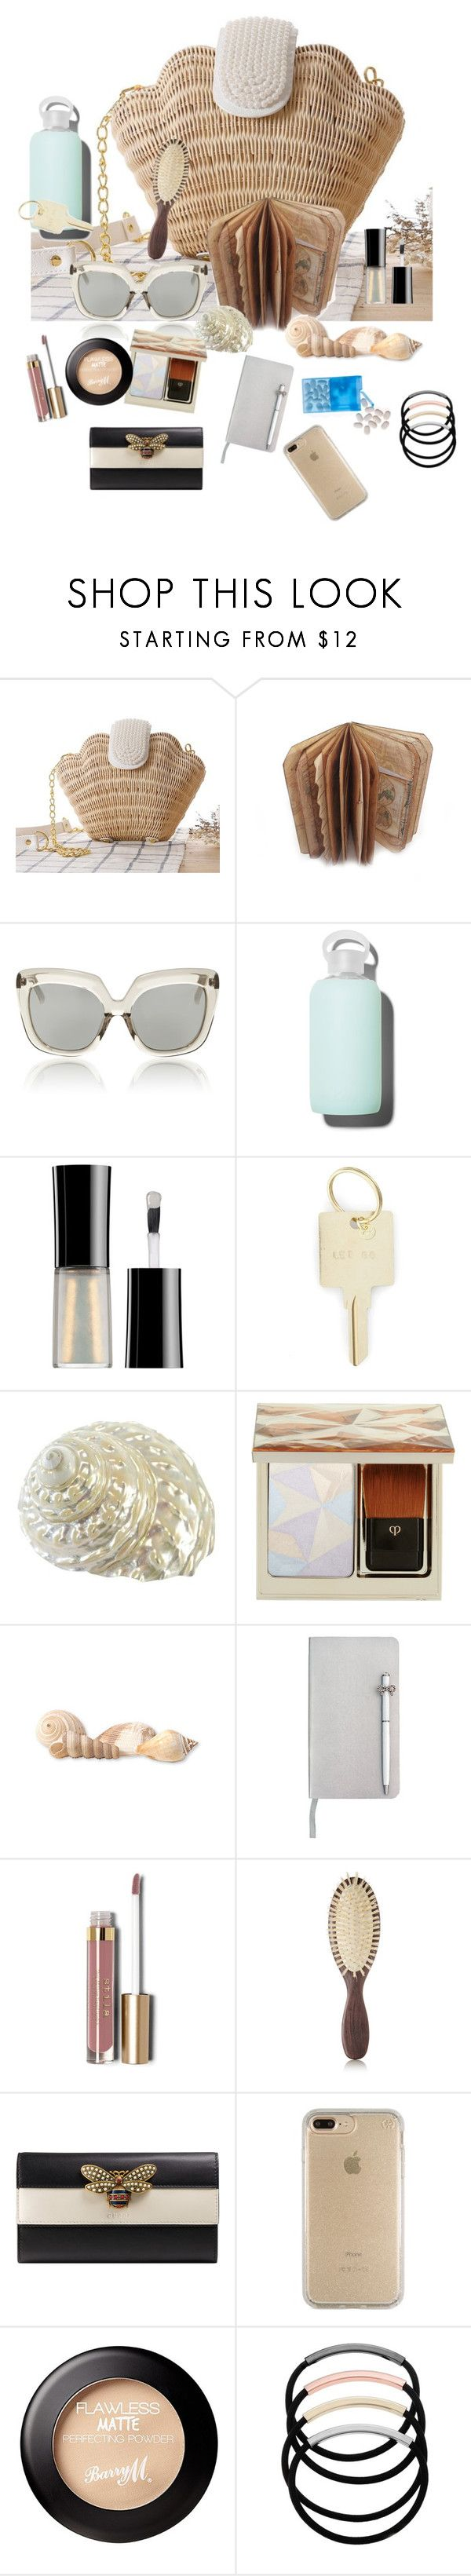 """""""#what's in my bag?"""" by wendycecille ❤ liked on Polyvore featuring Linda Farrow, bkr, Giorgio Armani, The Giving Keys, Clé de Peau Beauté, Coldwater Creek, ICE London, Stila, Christophe Robin and Gucci"""